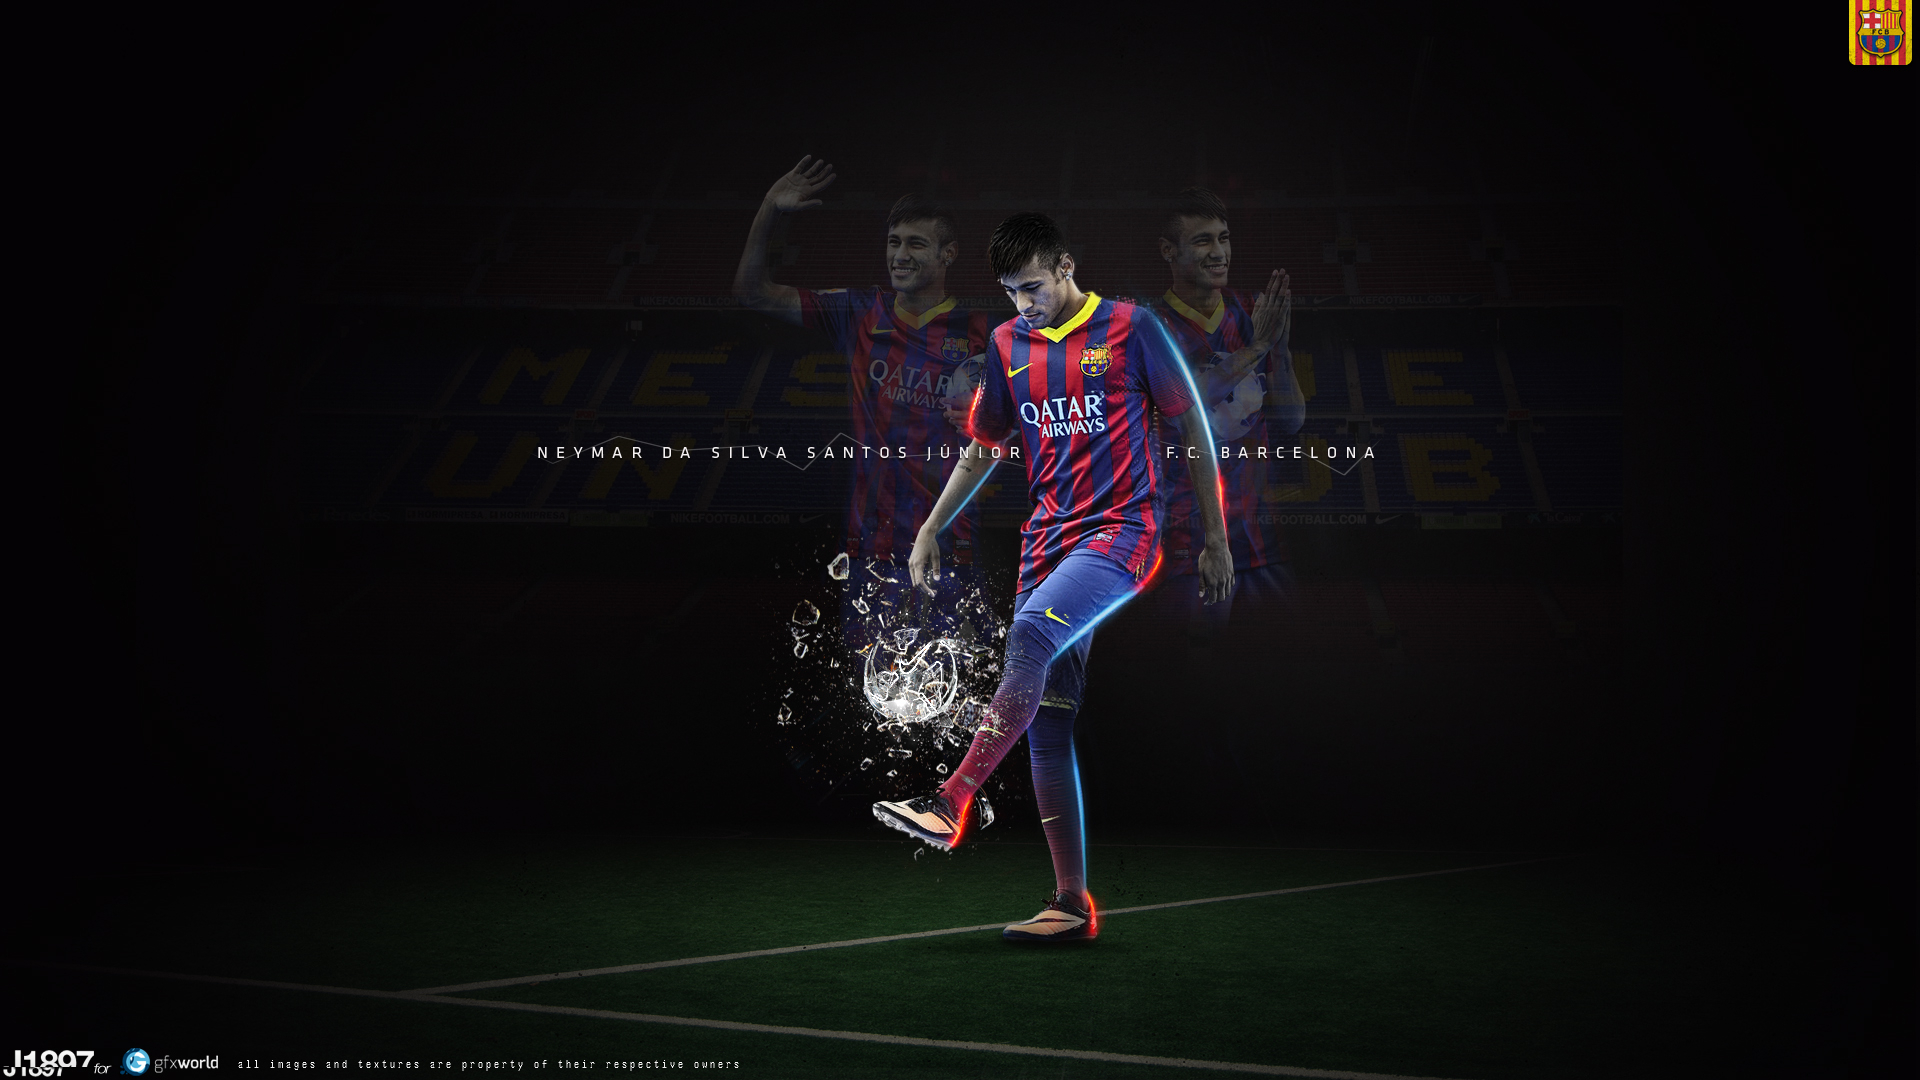 Neymar Jr. for 1920 x 1080 HDTV 1080p resolution